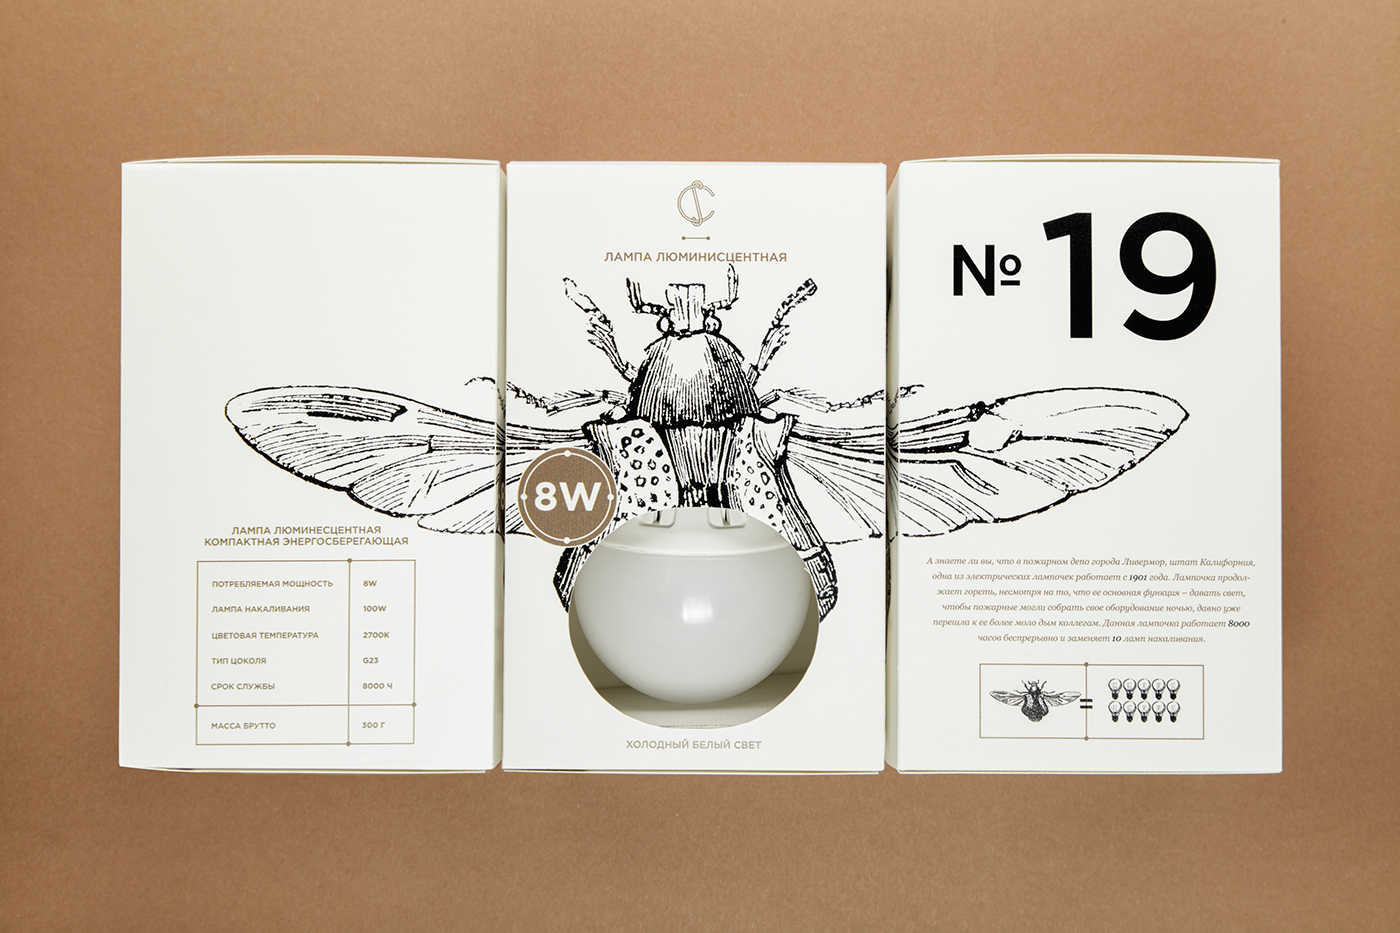 Insect-inspired packaging lights up beautiful new brand identity